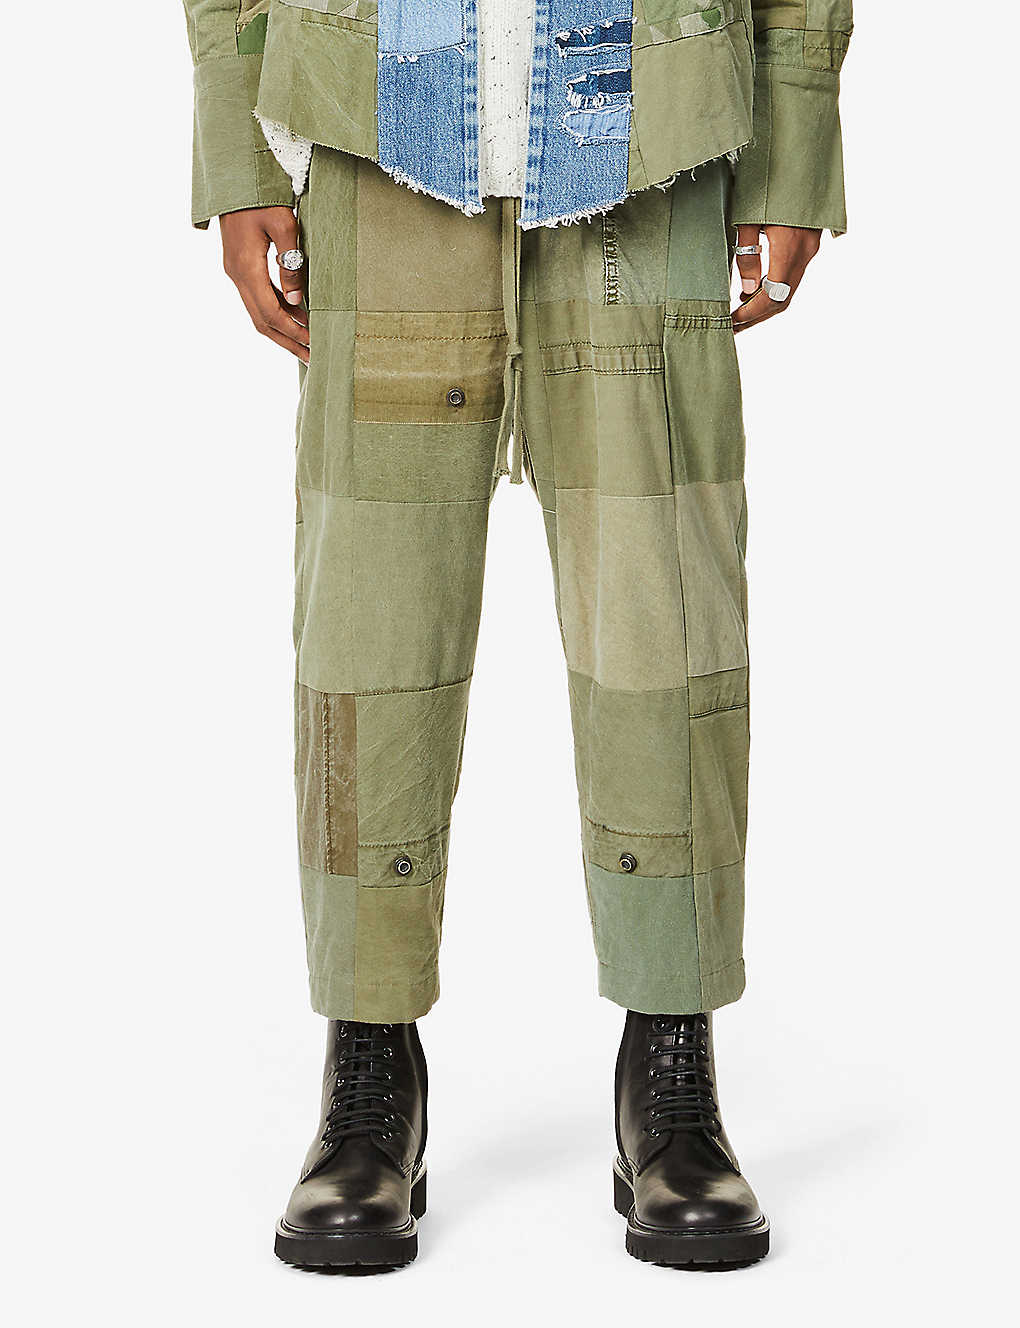 GREG LAUREN: SCRAPWORK Tent tapered cropped cotton trousers